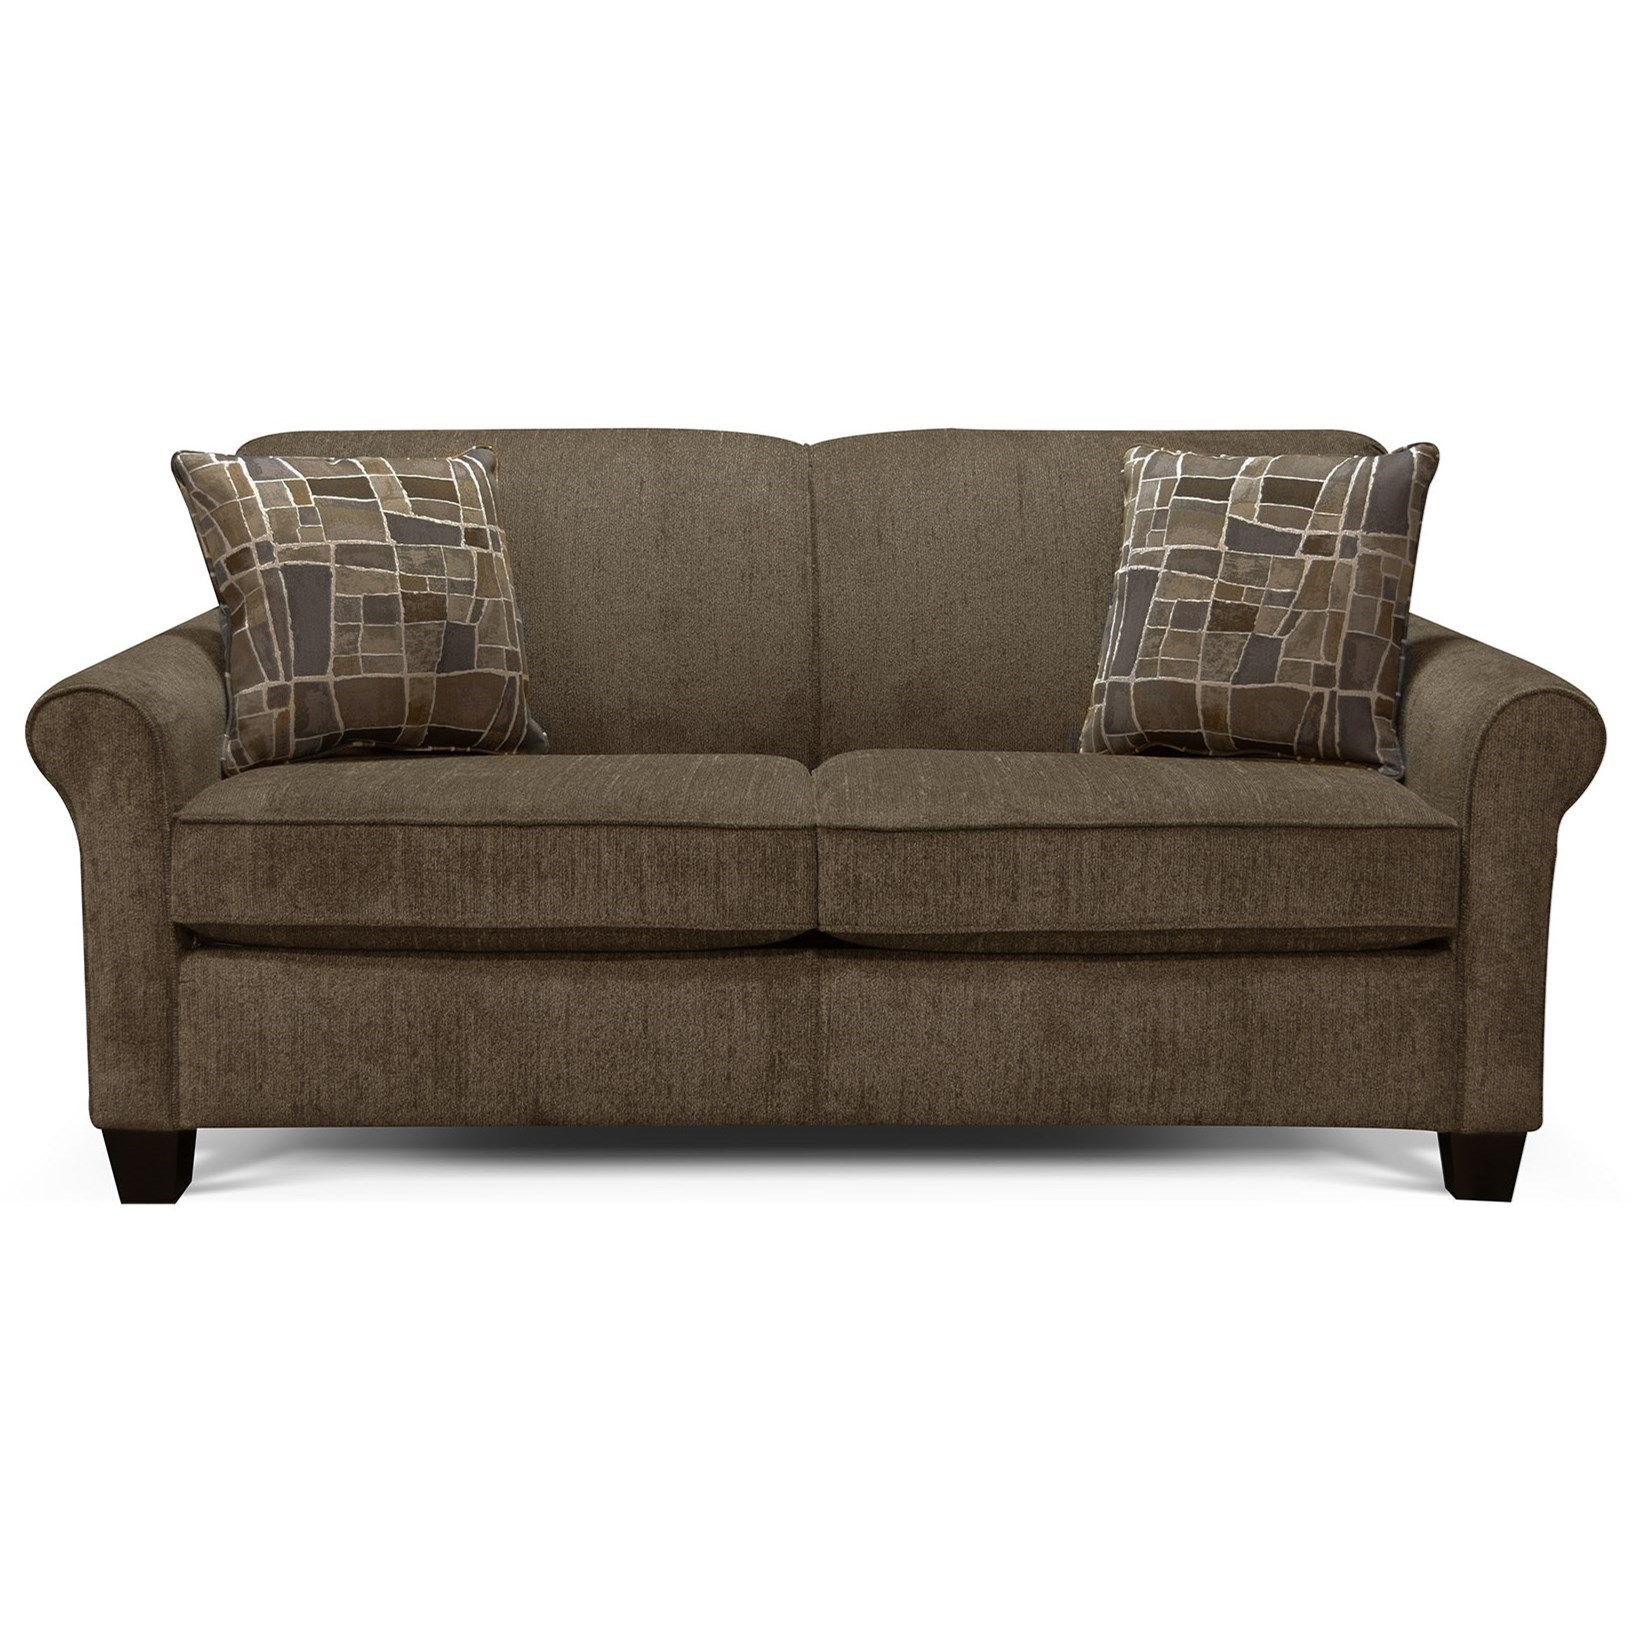 Angie  Full Sleeper Sofa by England at Virginia Furniture Market